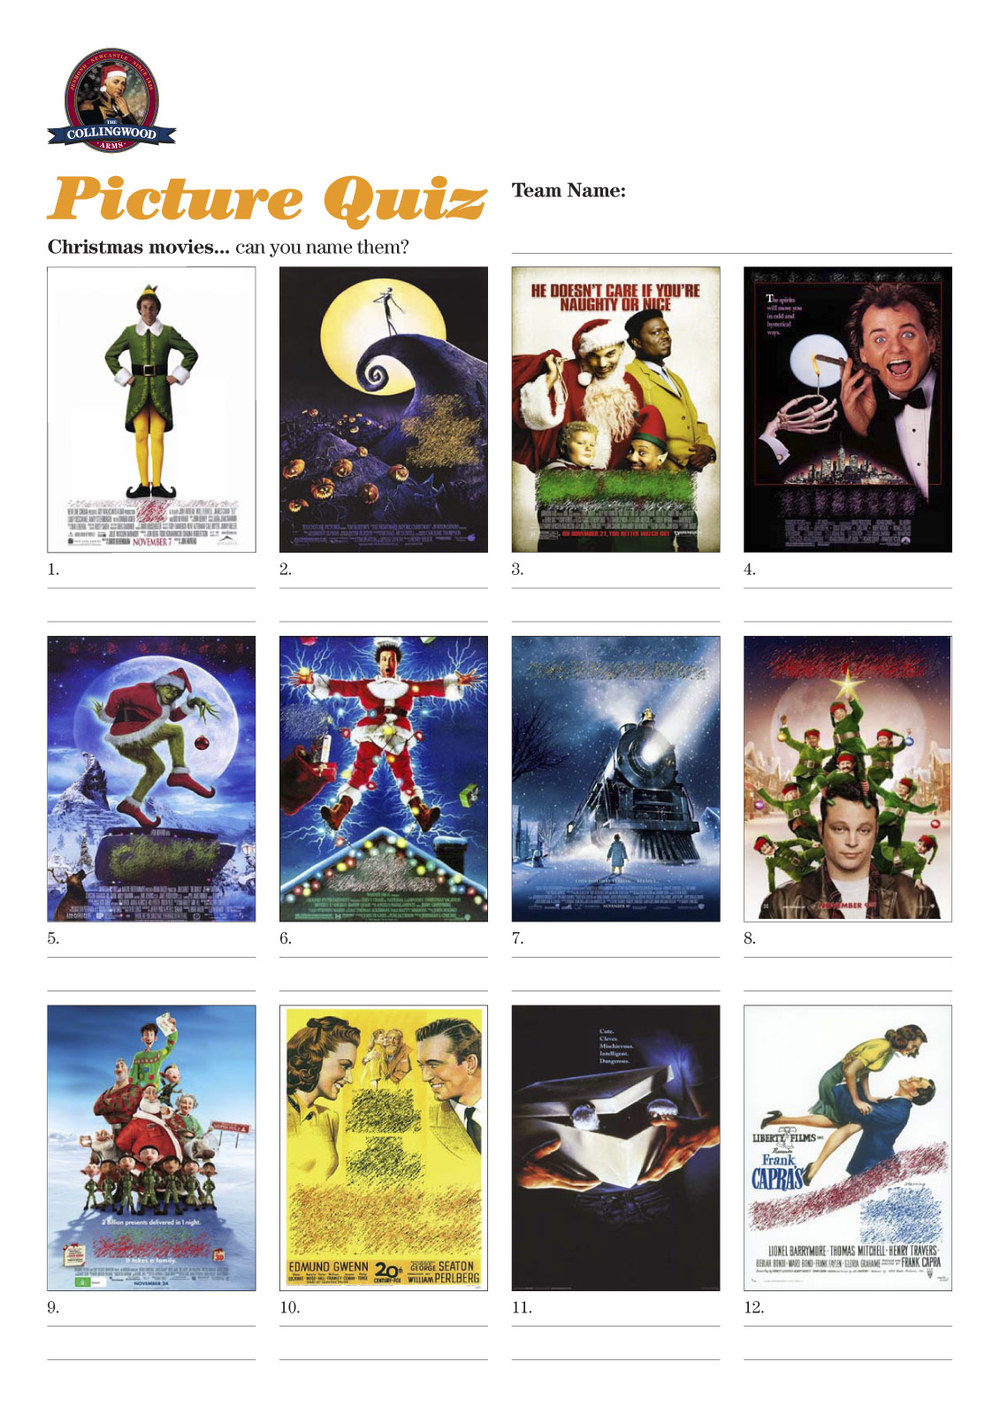 Can you name these Christmas movies from the posters?